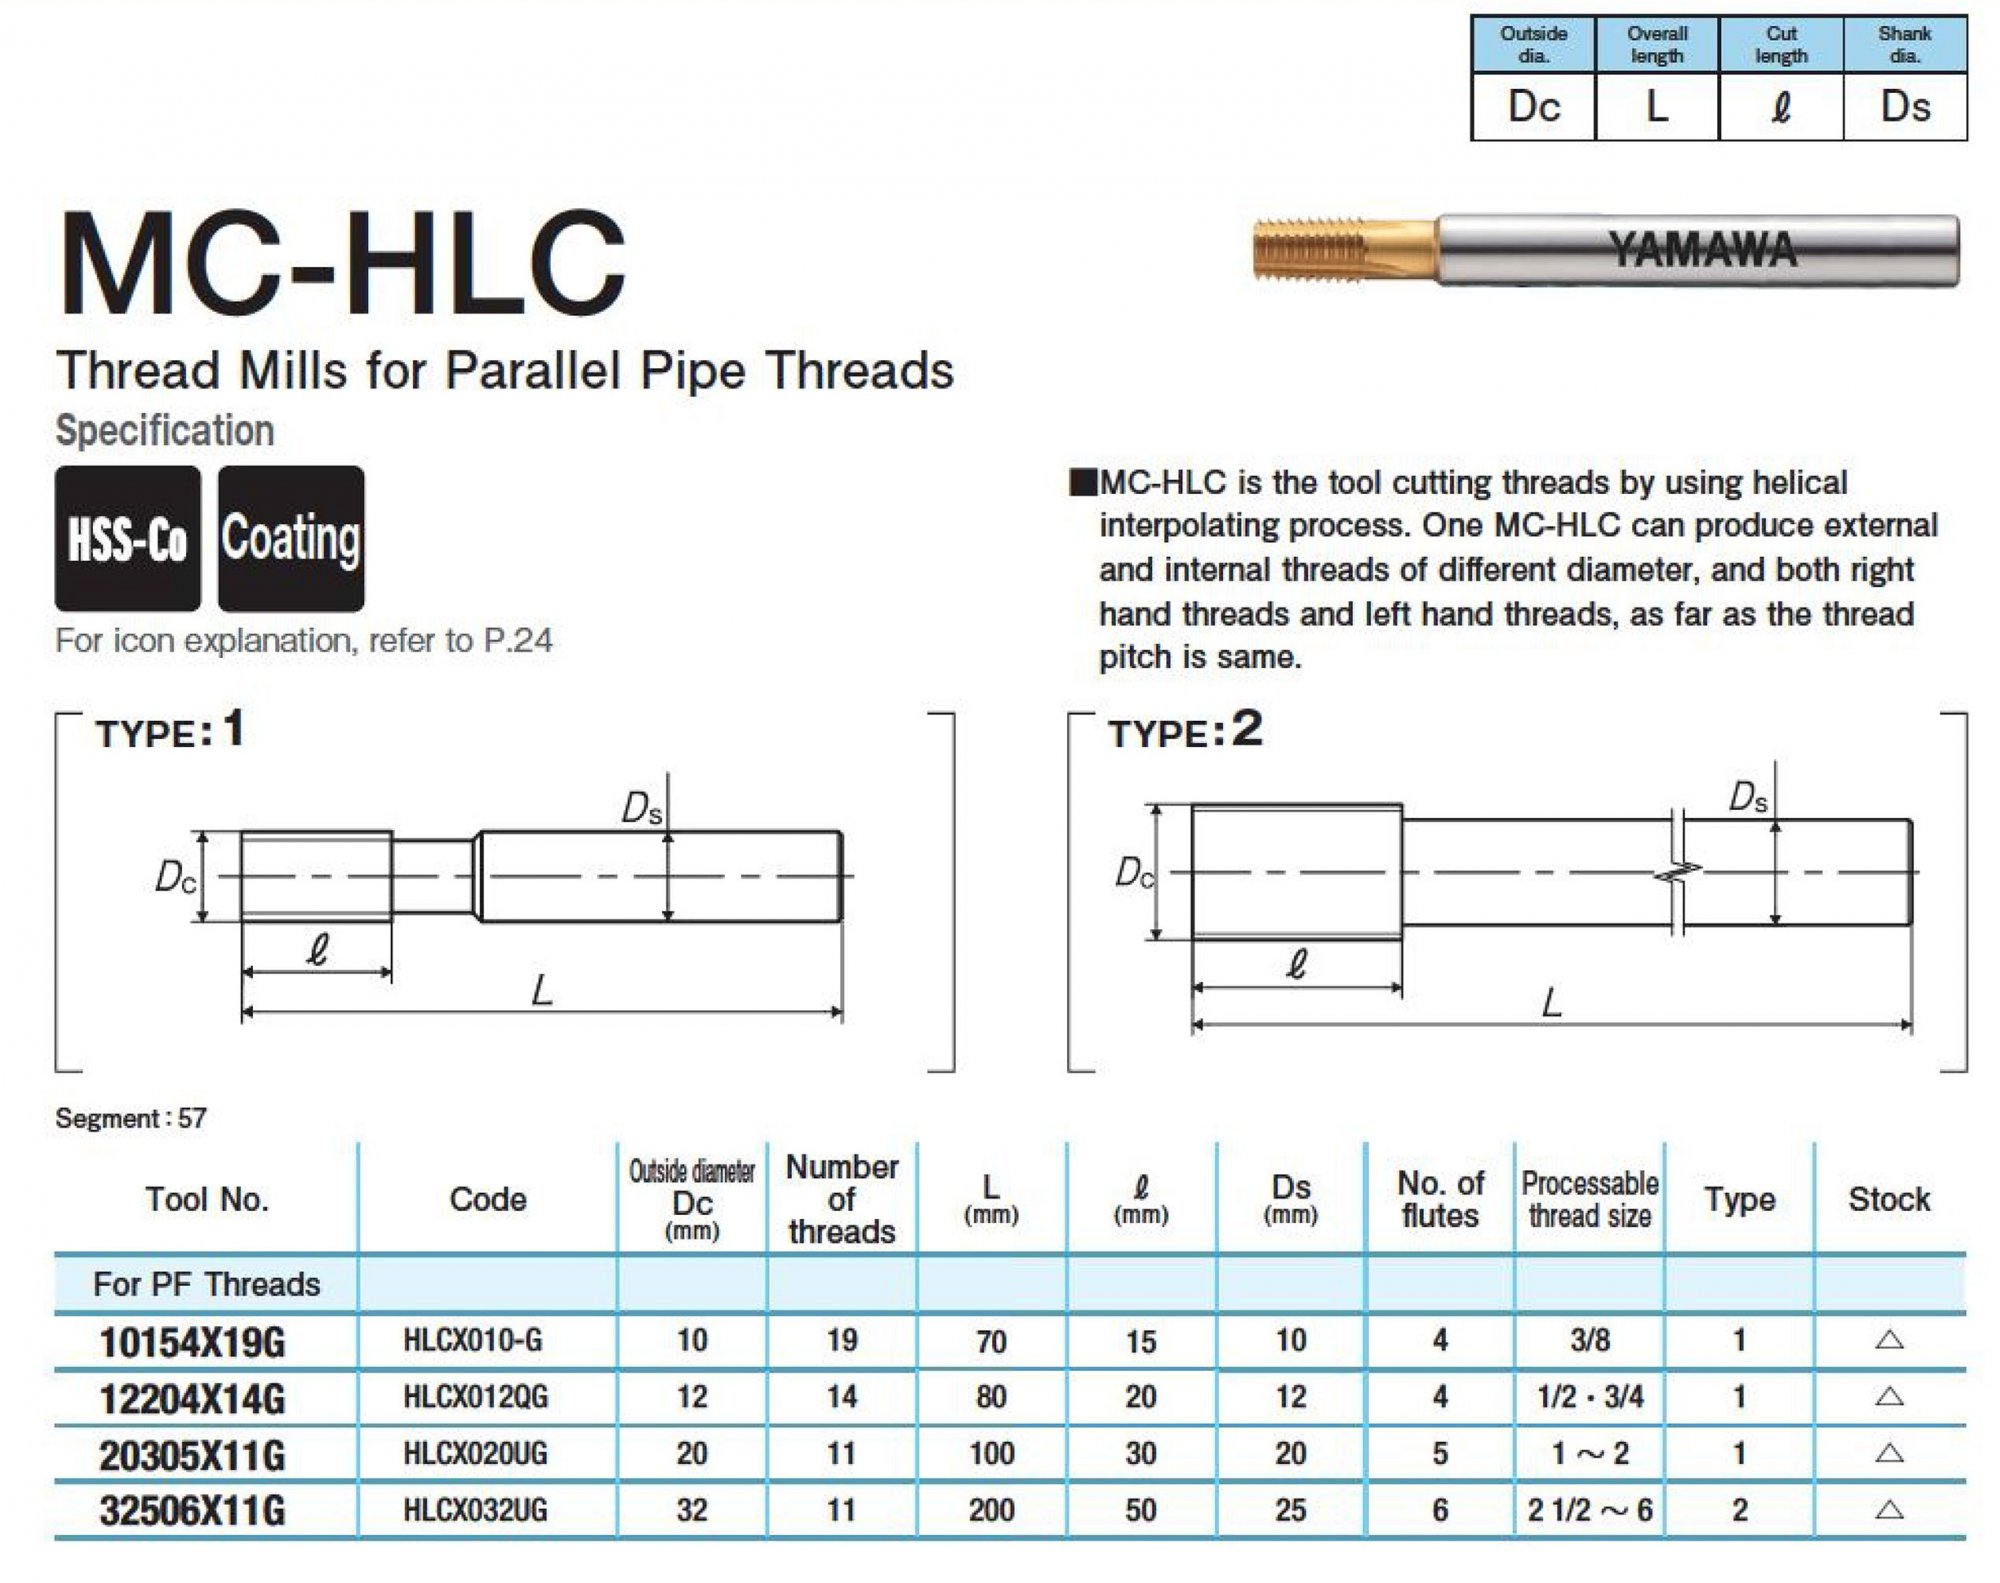 Thread-Mills-for-Parallel-Pipe-Threads-MC-HLC-02